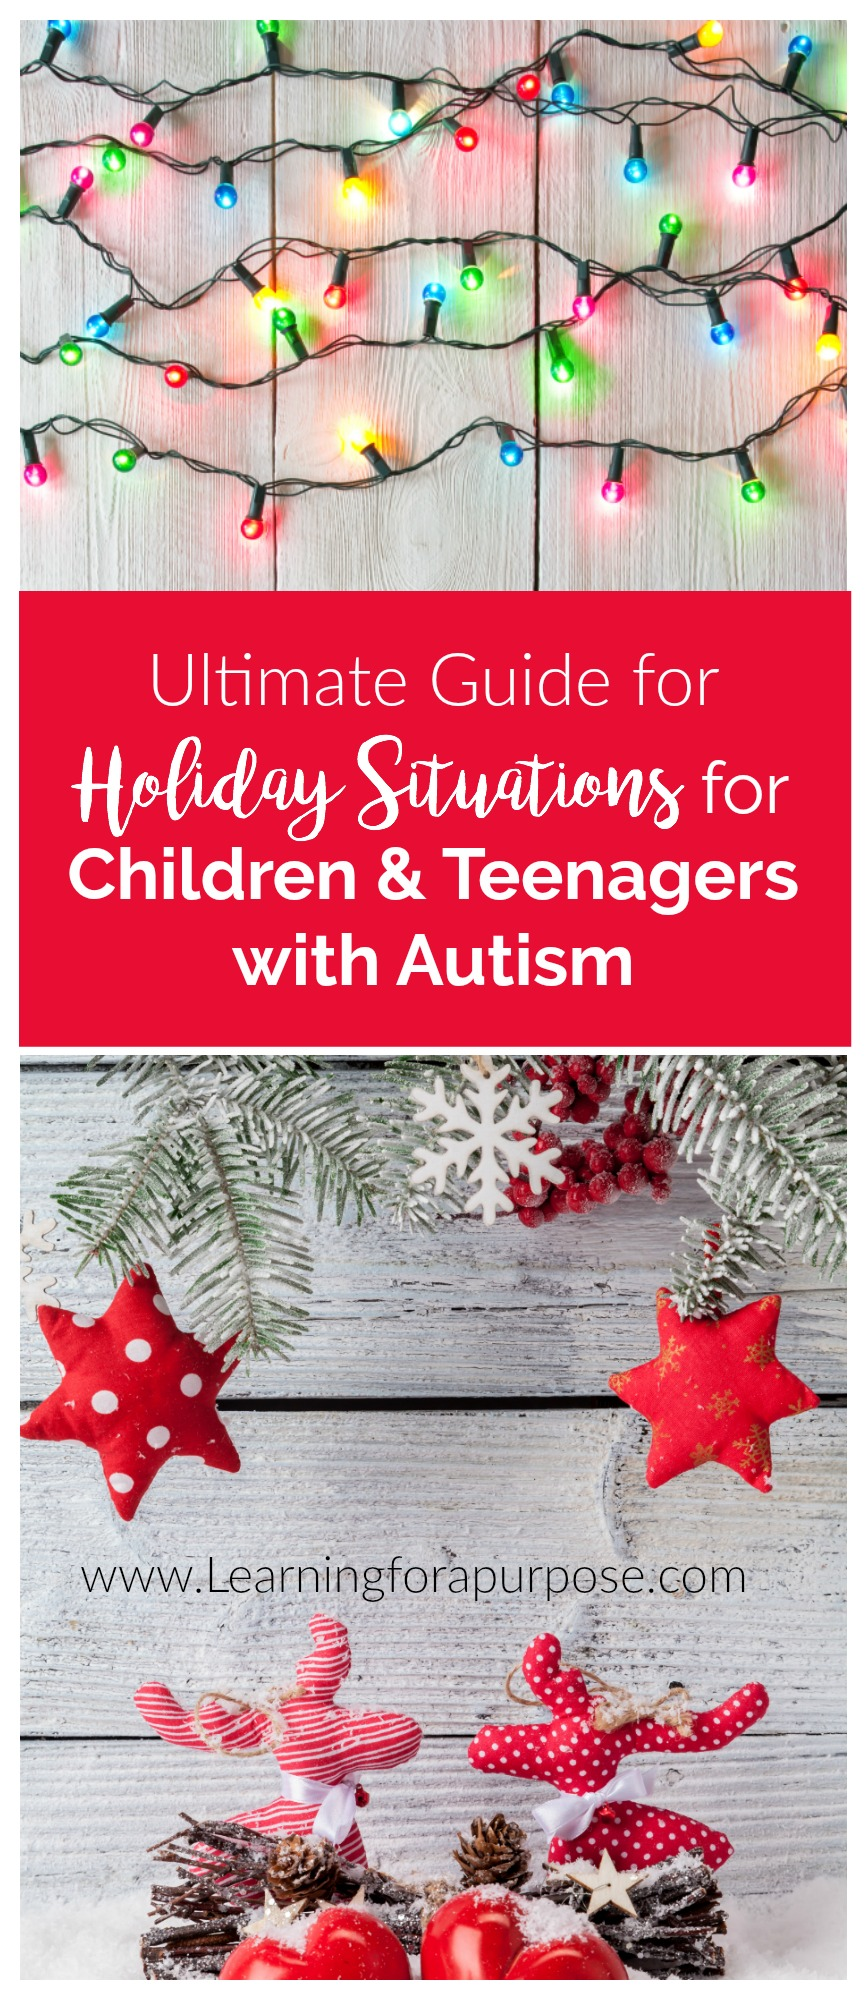 Ultimate Guide for Holiday Situations for Children and Teenagers with Autism